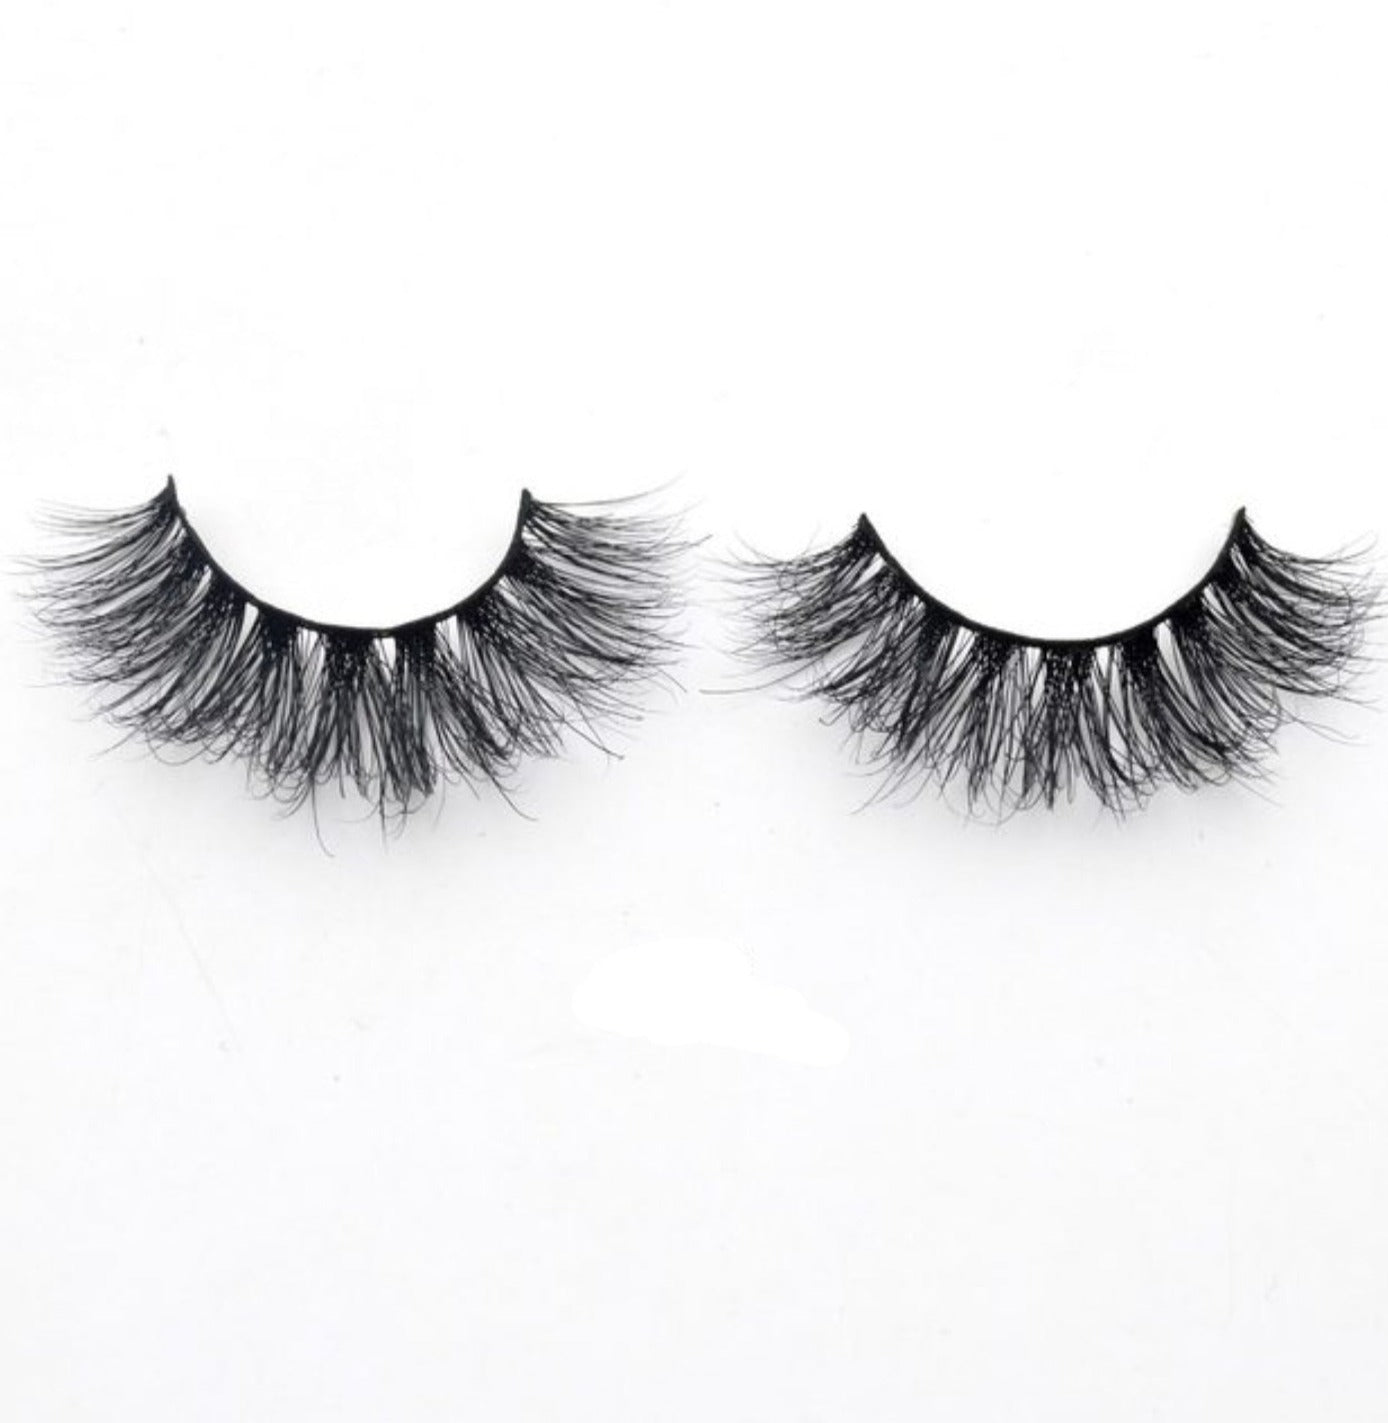 Fluffy - 3D Mink Lashes - Kay Nicole Cosmetics